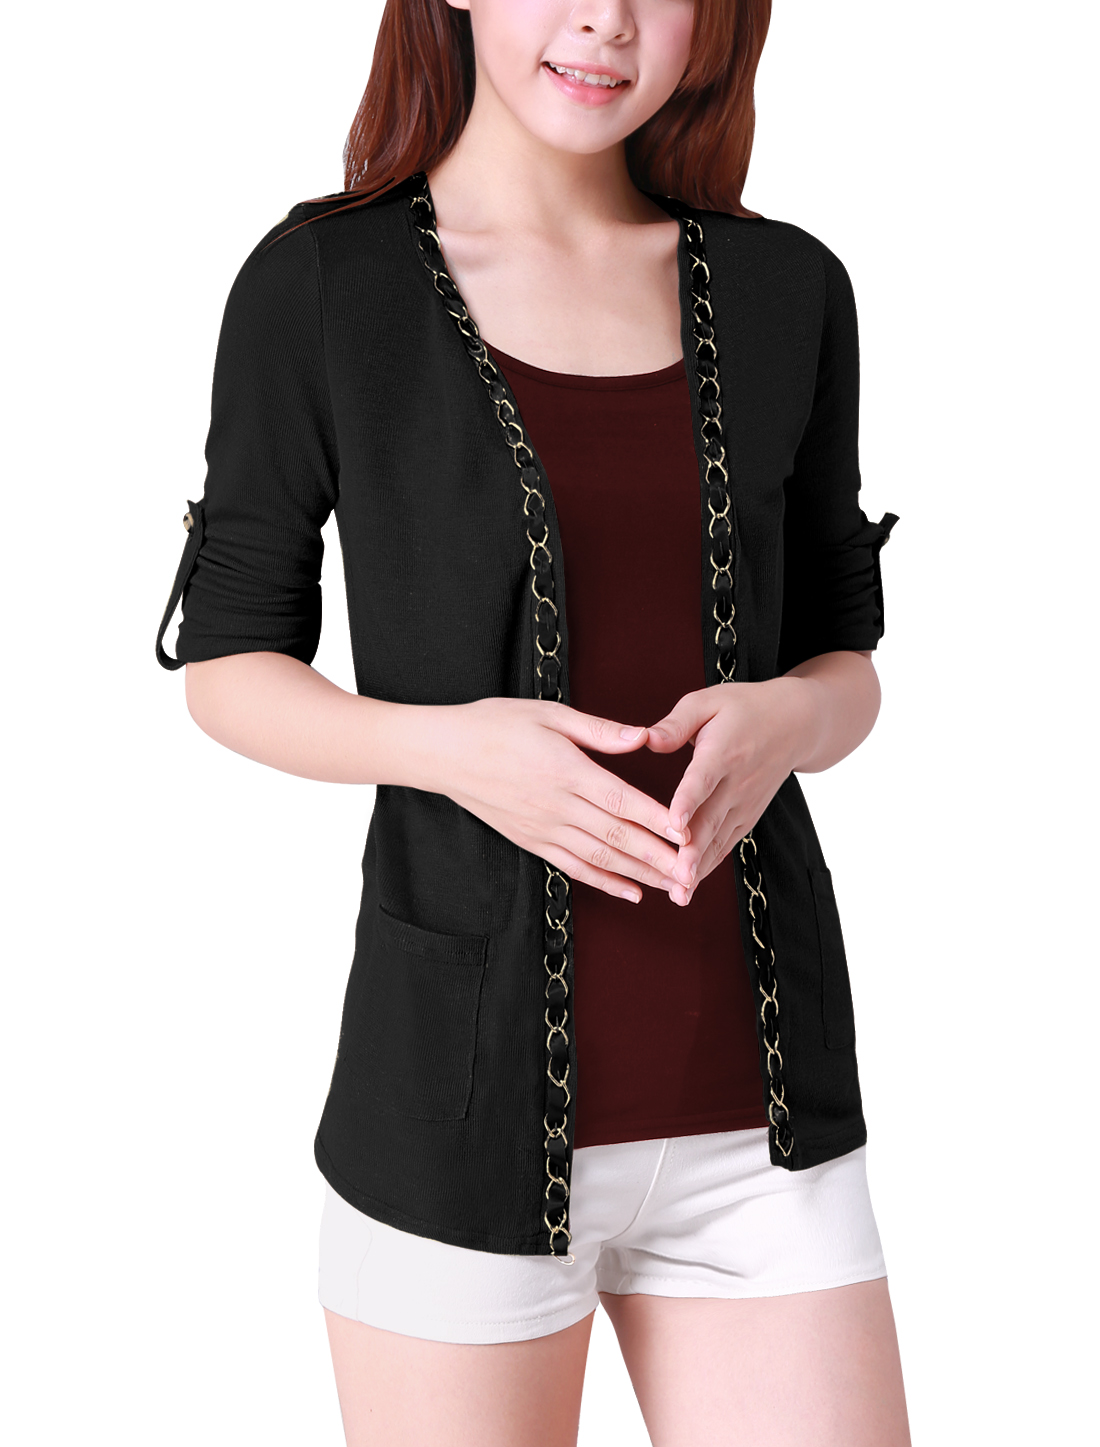 Ladies Front Opening Chain Decor Rolled Up Sleeves Cardigan Black XL